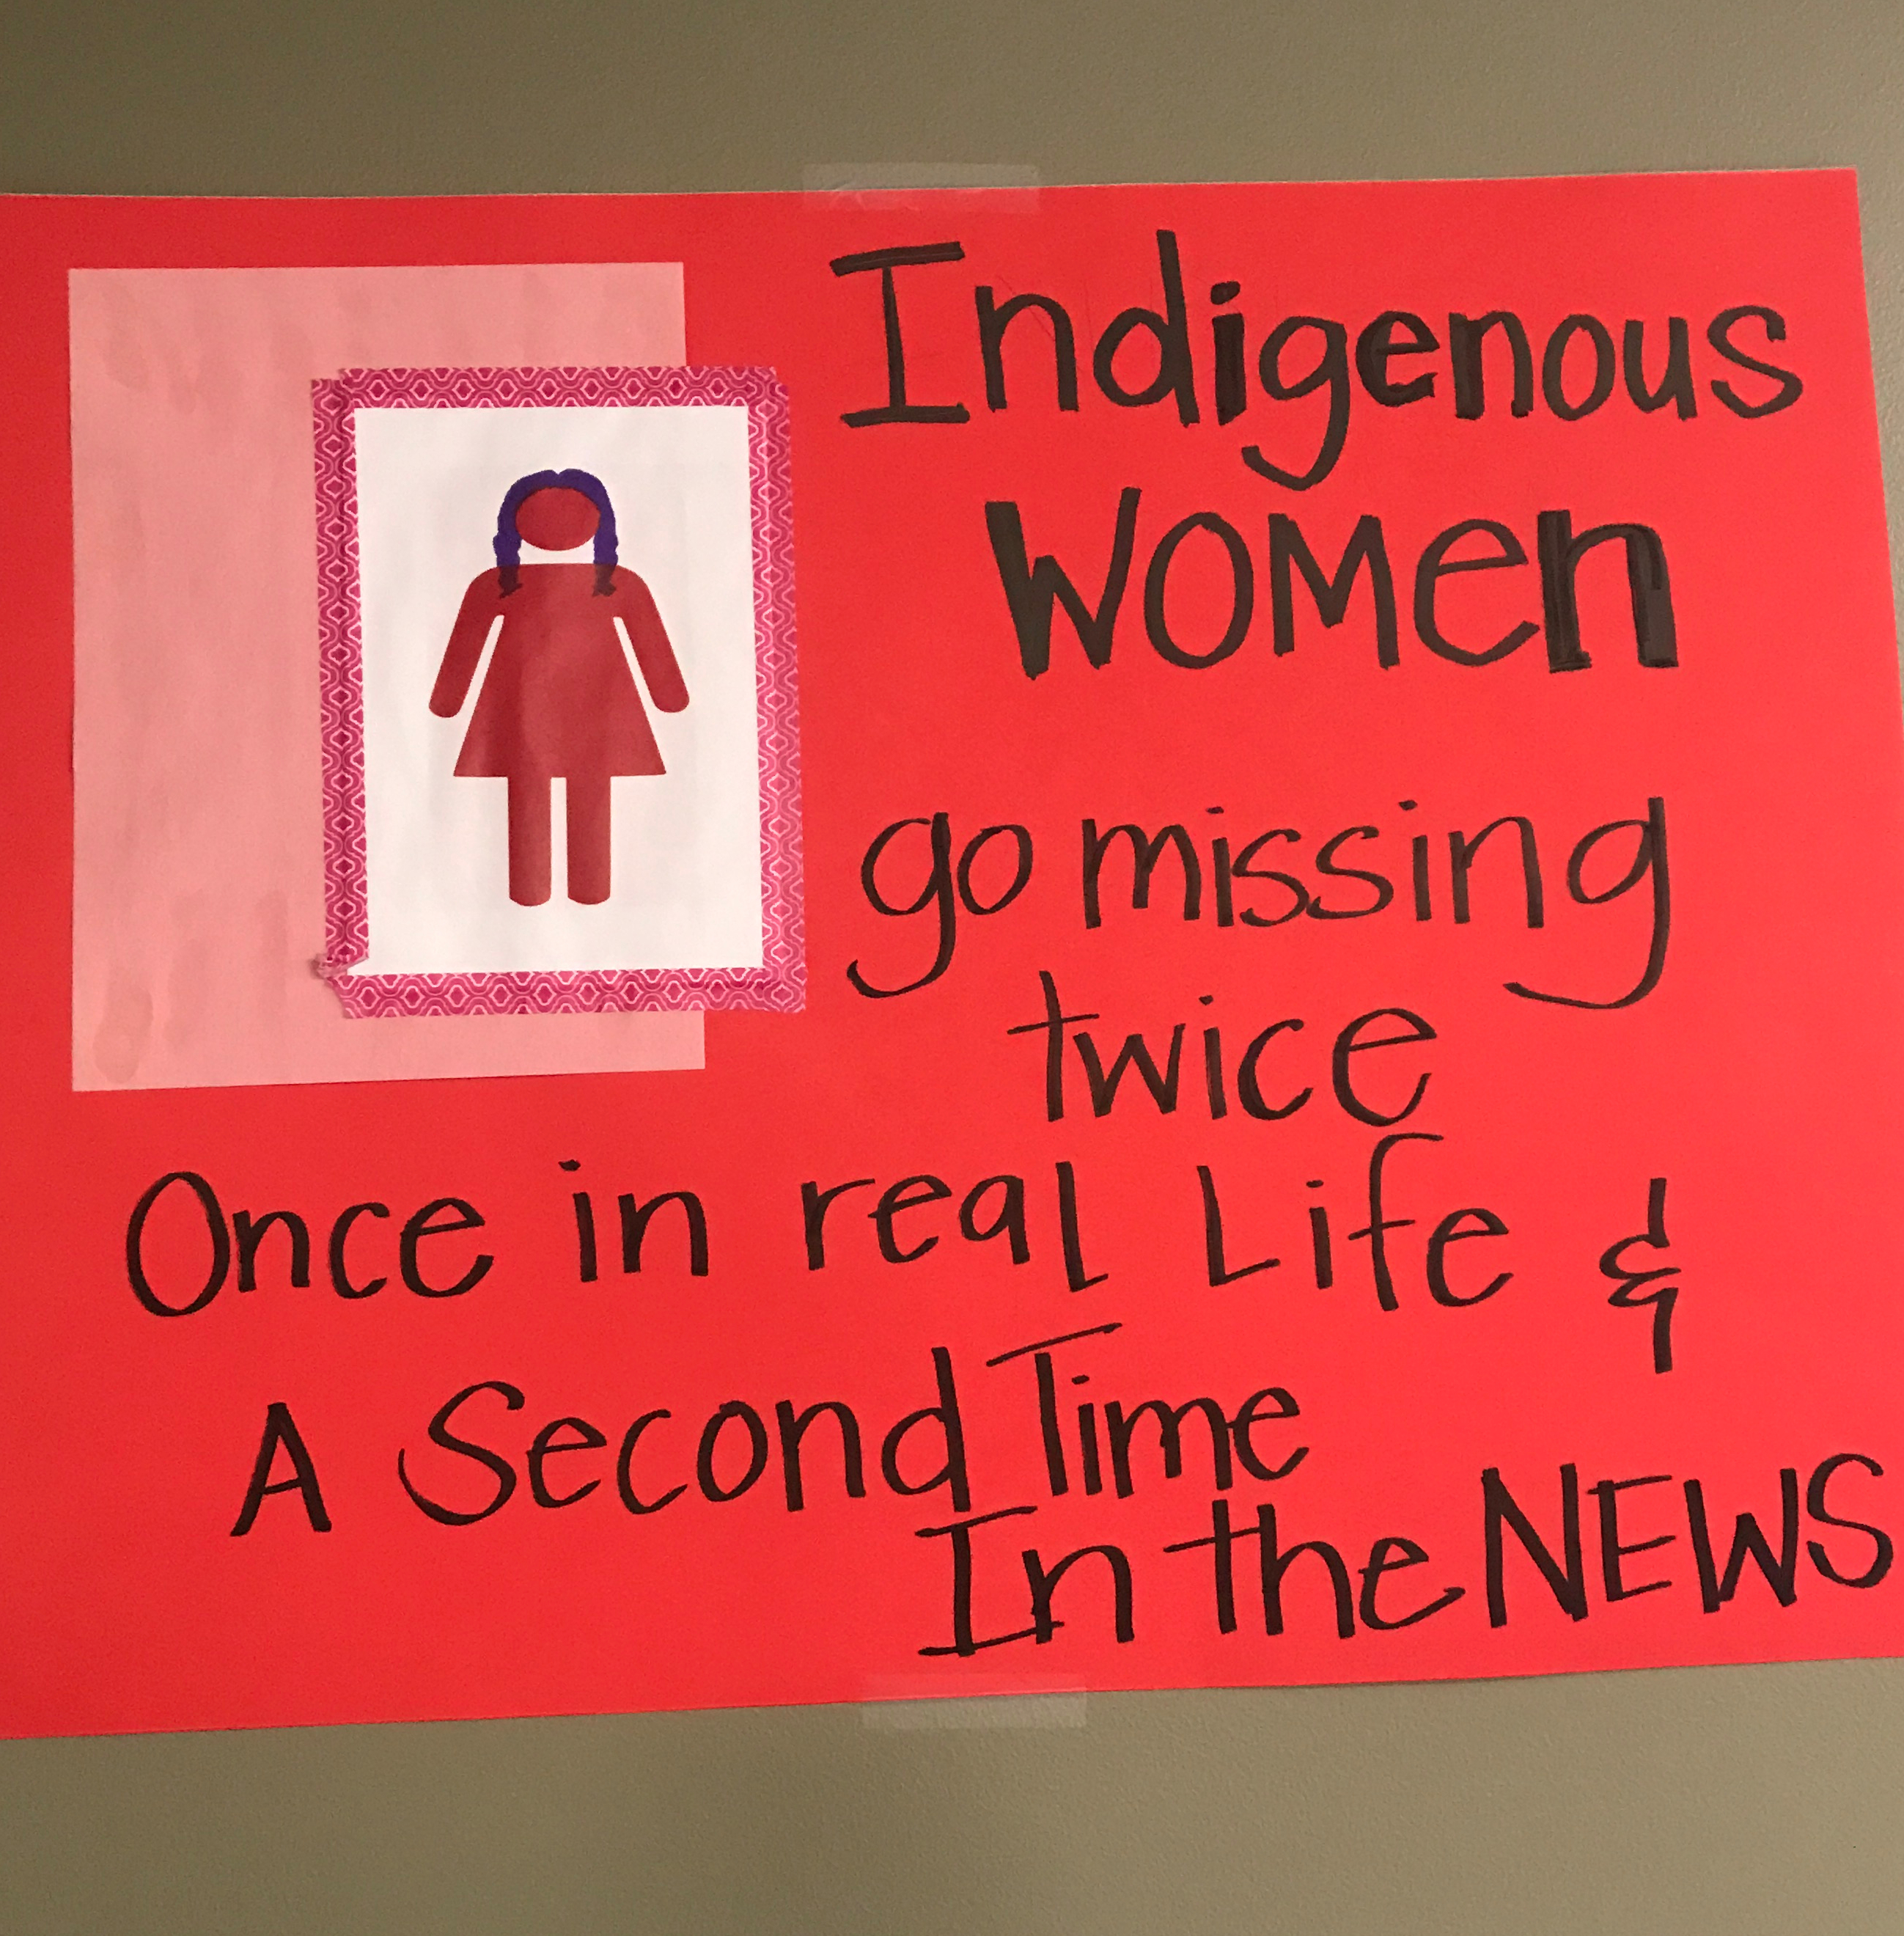 Minnesota Native News: Honoring Missing and Murdered Indigenous People